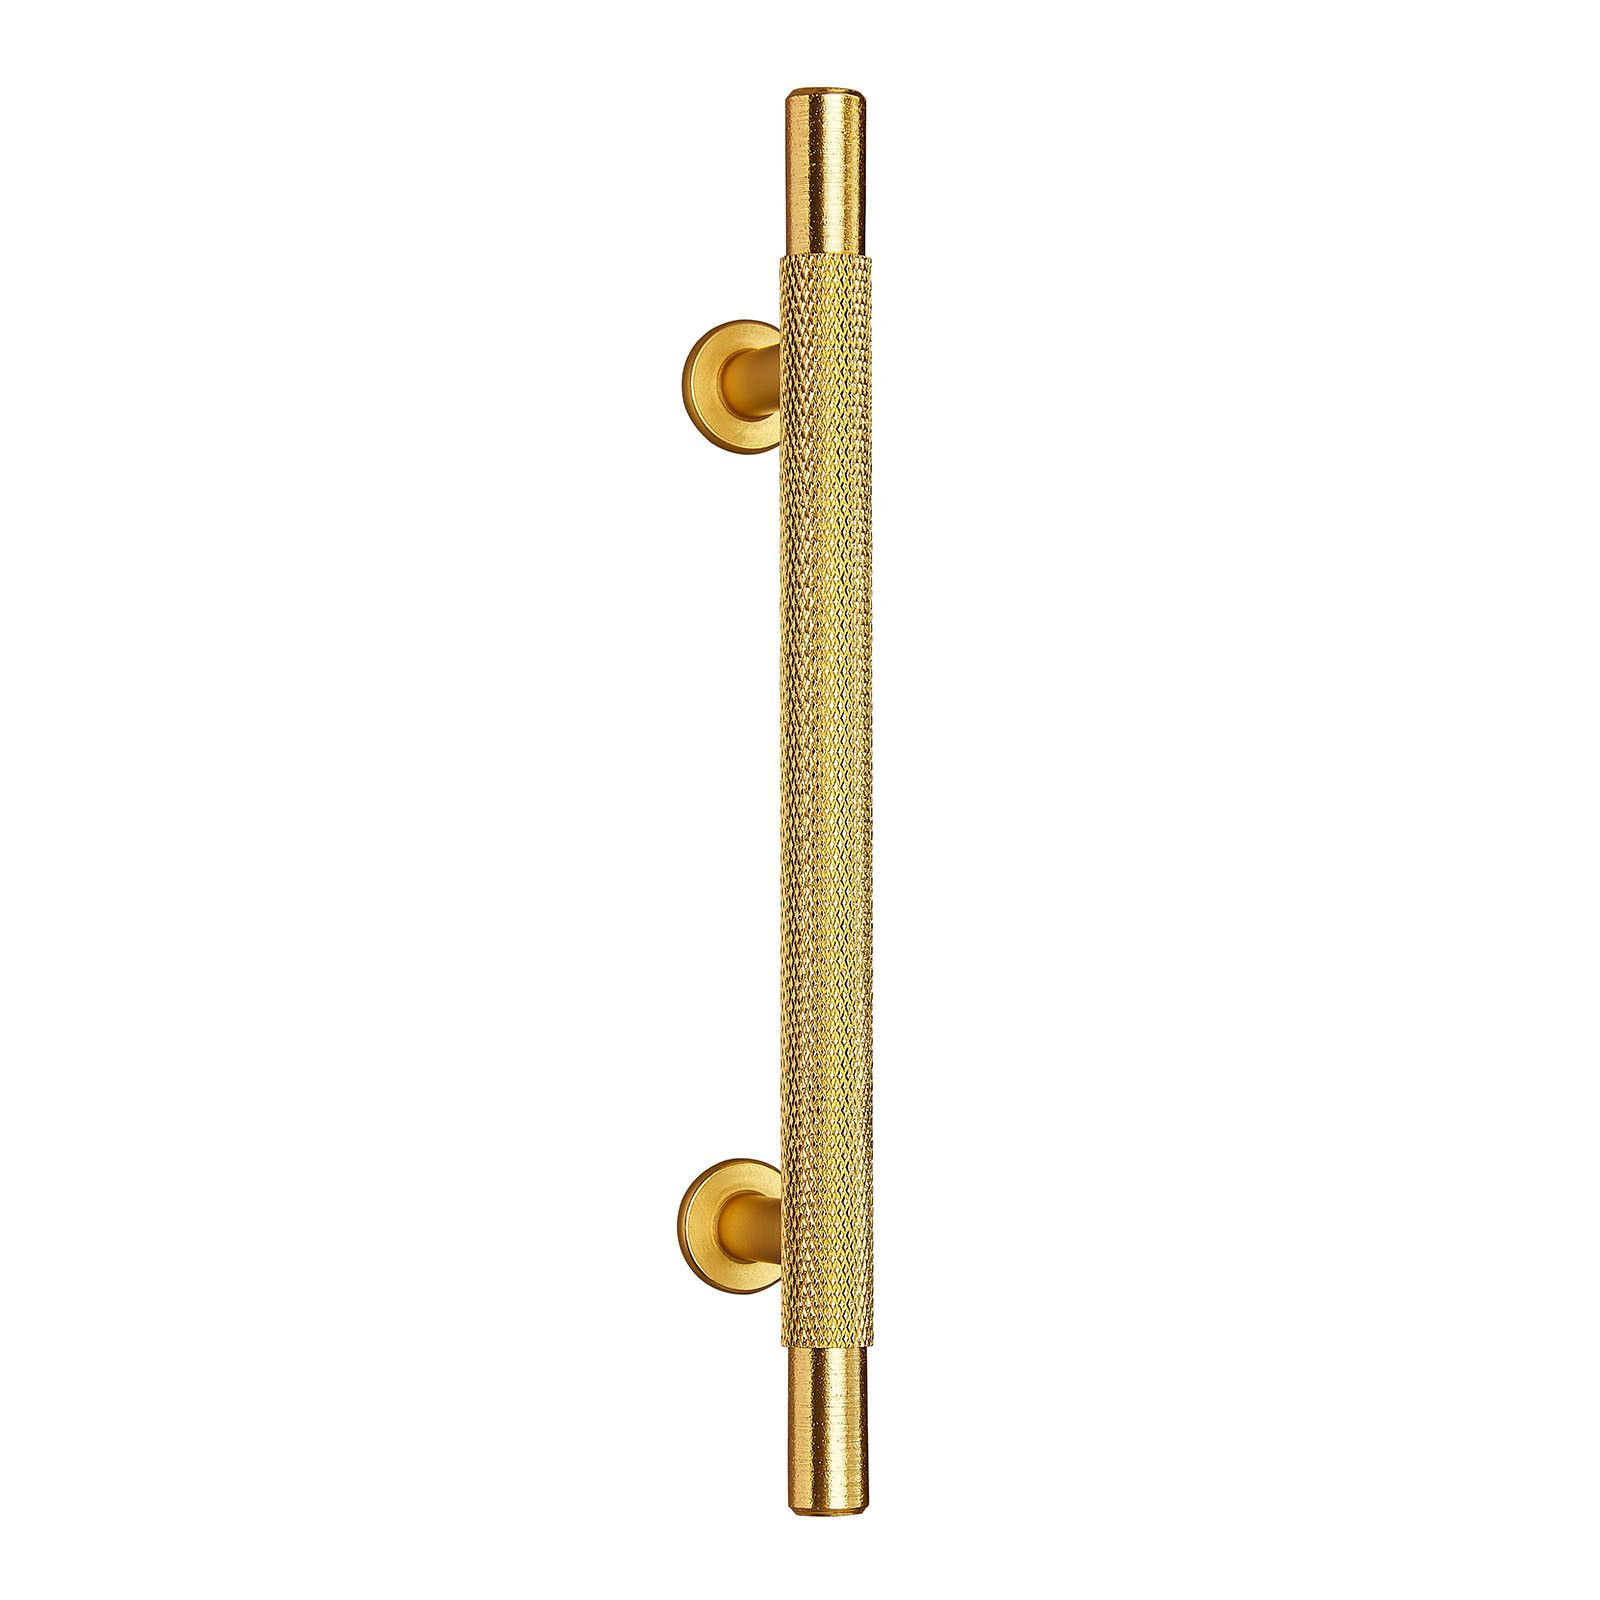 Polished Brass Knurled T Bar Cabinet Handle 96mm C C P1106pb Ironmongery Experts Polished Brass Cabinet Handles Cupboard Handles